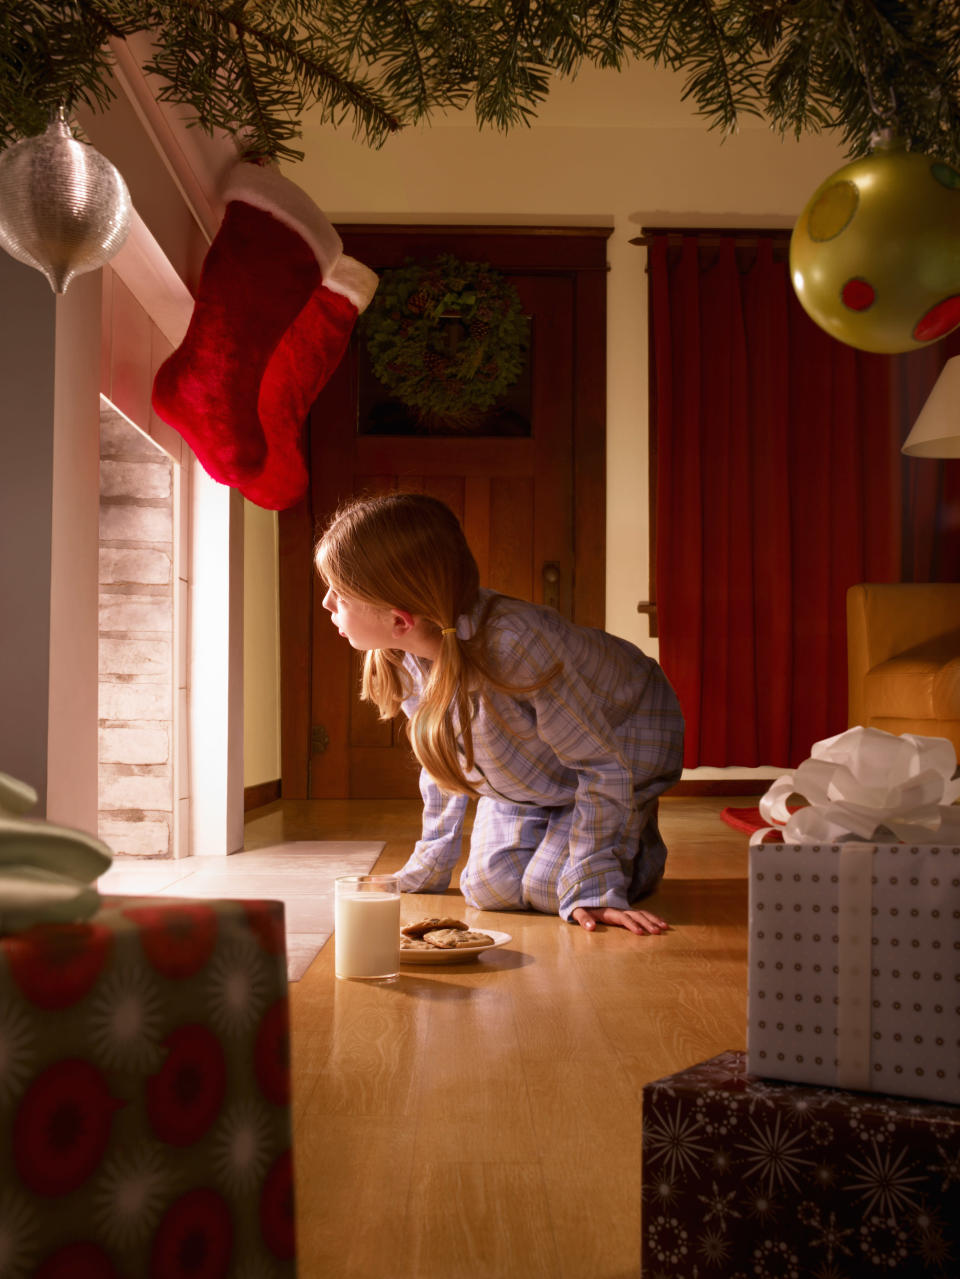 Should parents prolong the magic of Christmas for their children? [Photo: Getty]